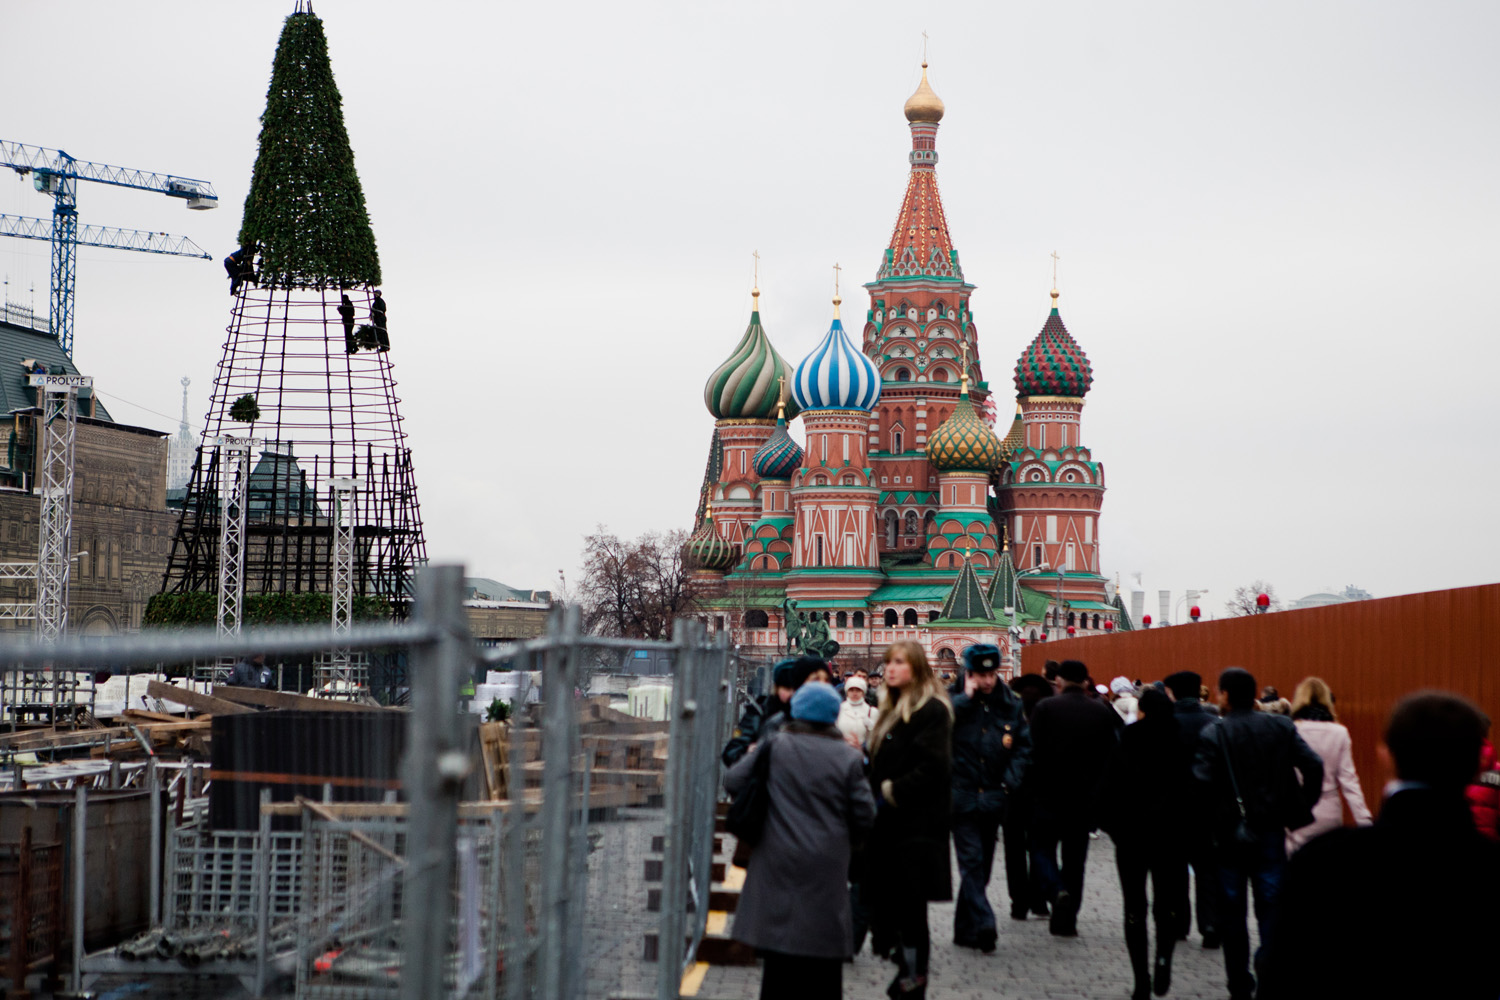 red-square-moscow_8224468675_o.jpg